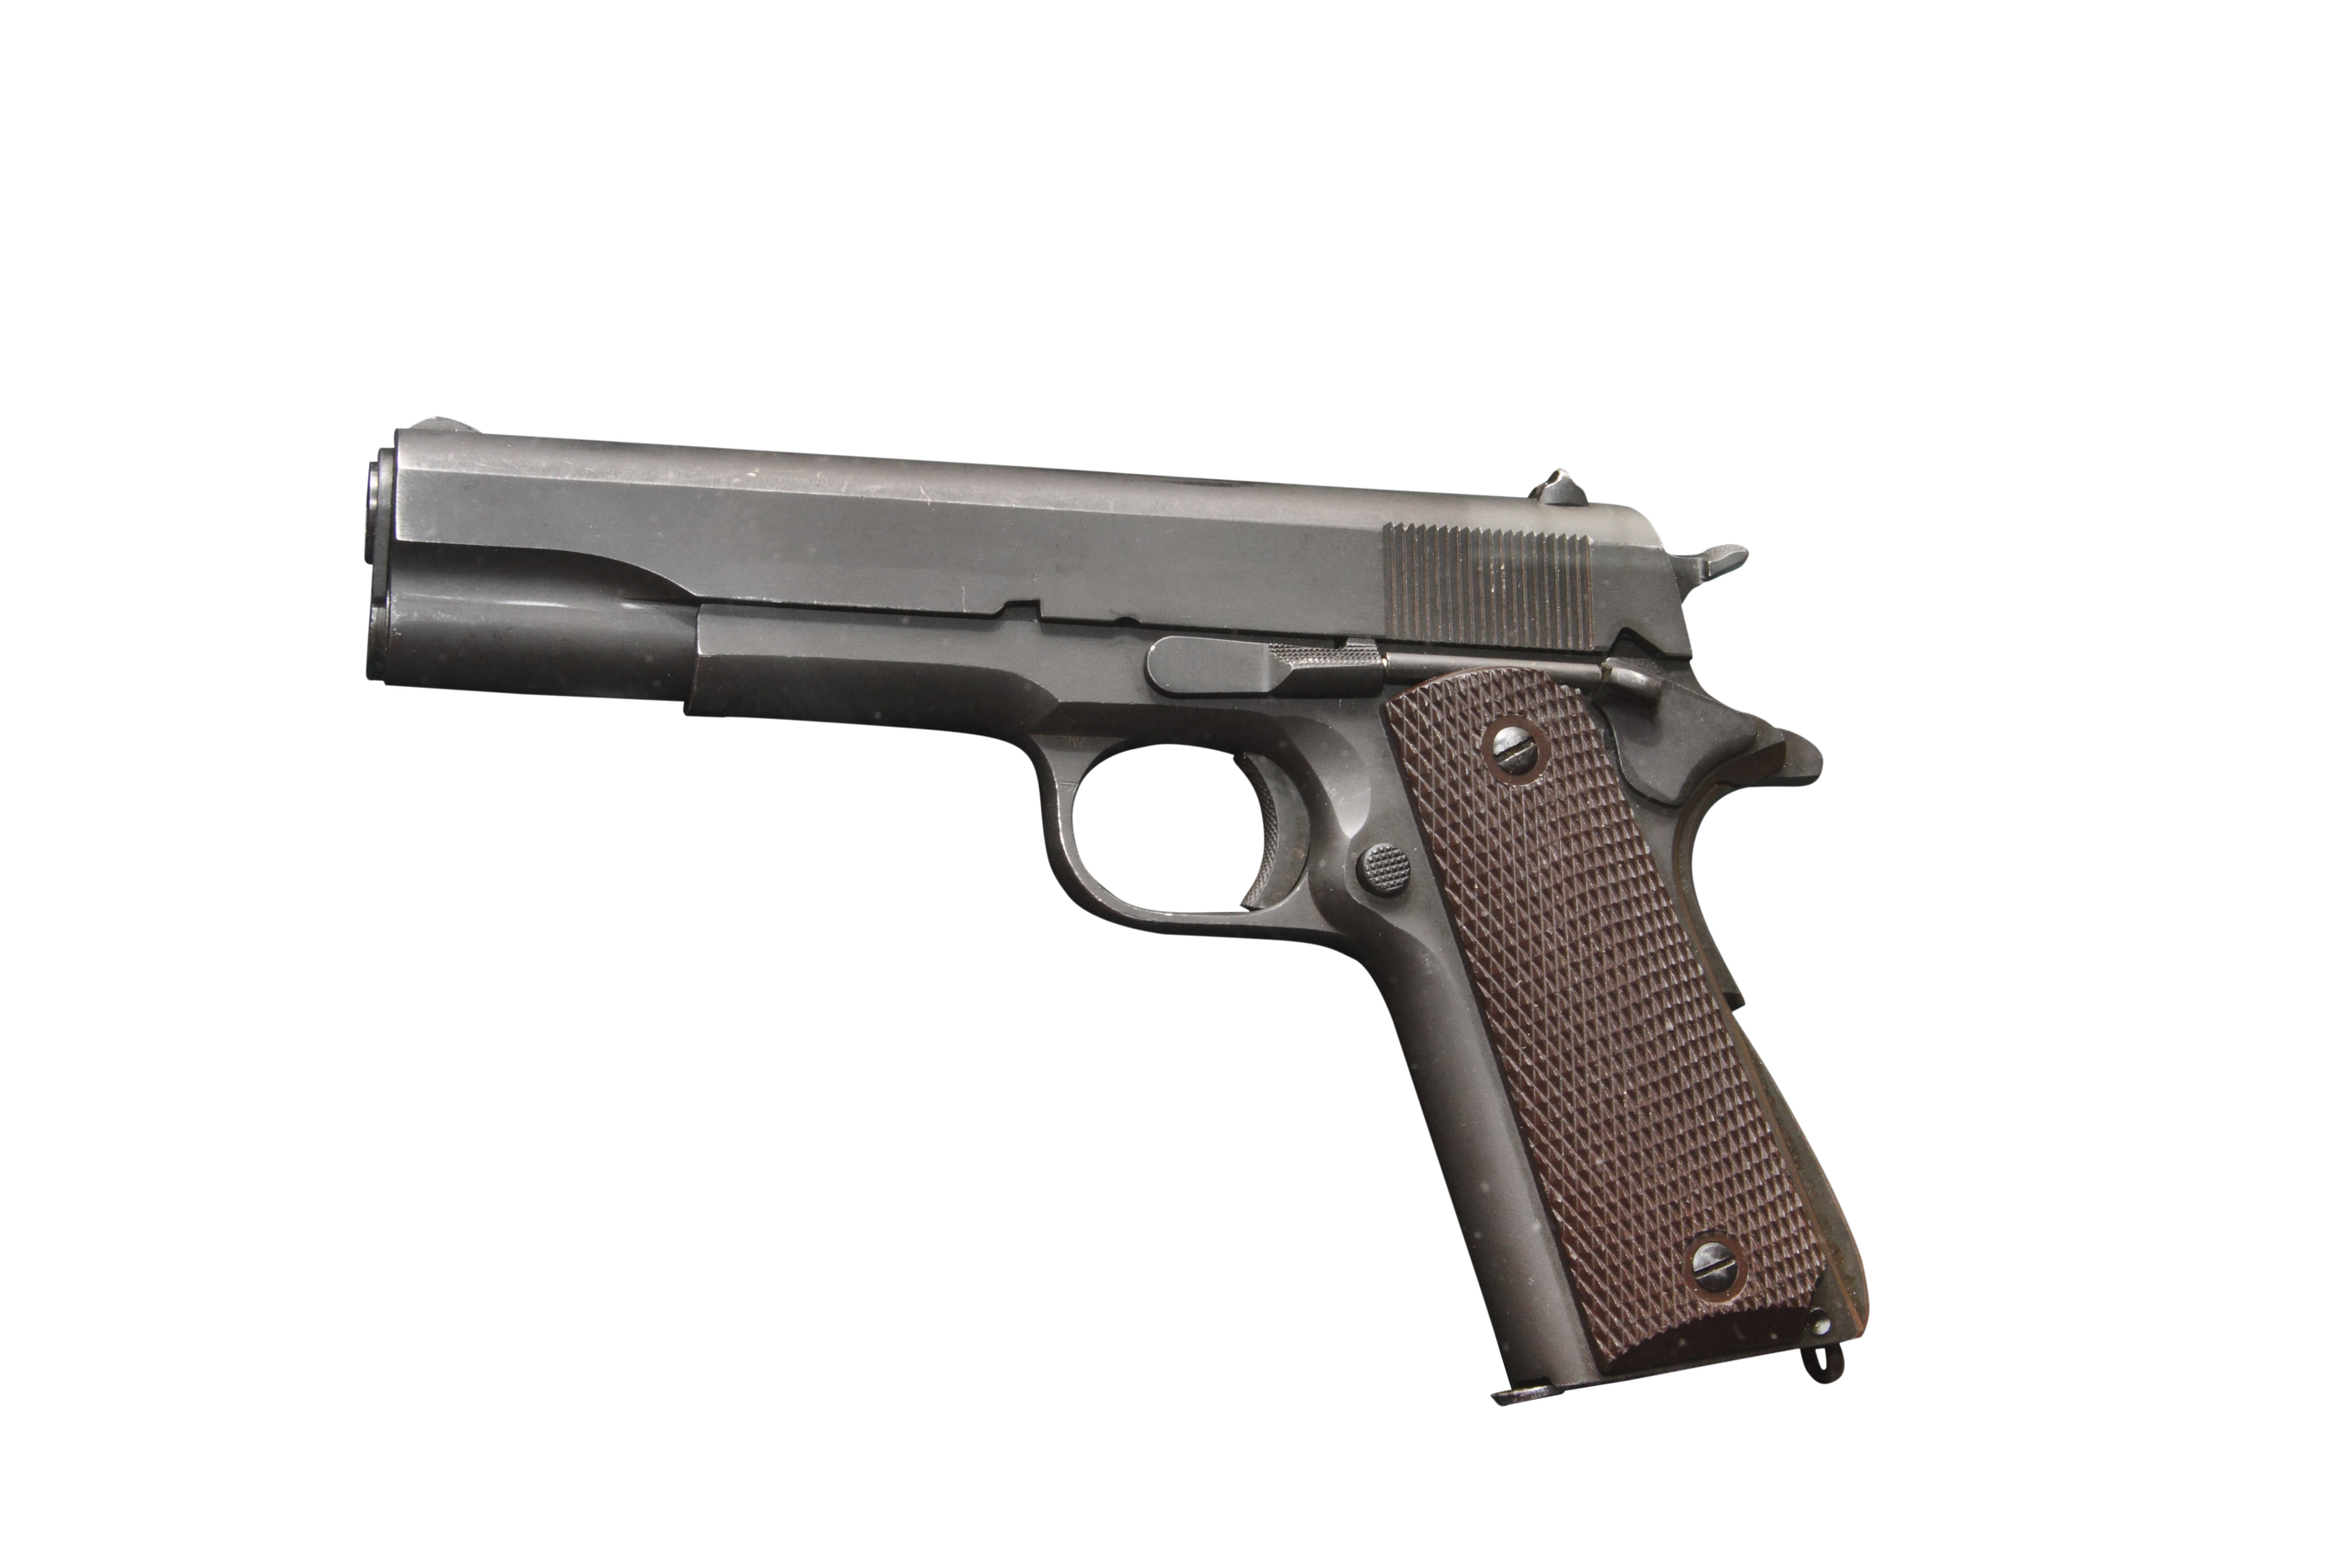 In the early 1920s, the base model Colt M1911 was slightly modified. The new model has received the proud name of Colt M1911 A1 Government Model and became the main weapons officer. In such a gun existed until the end of the Second world war.